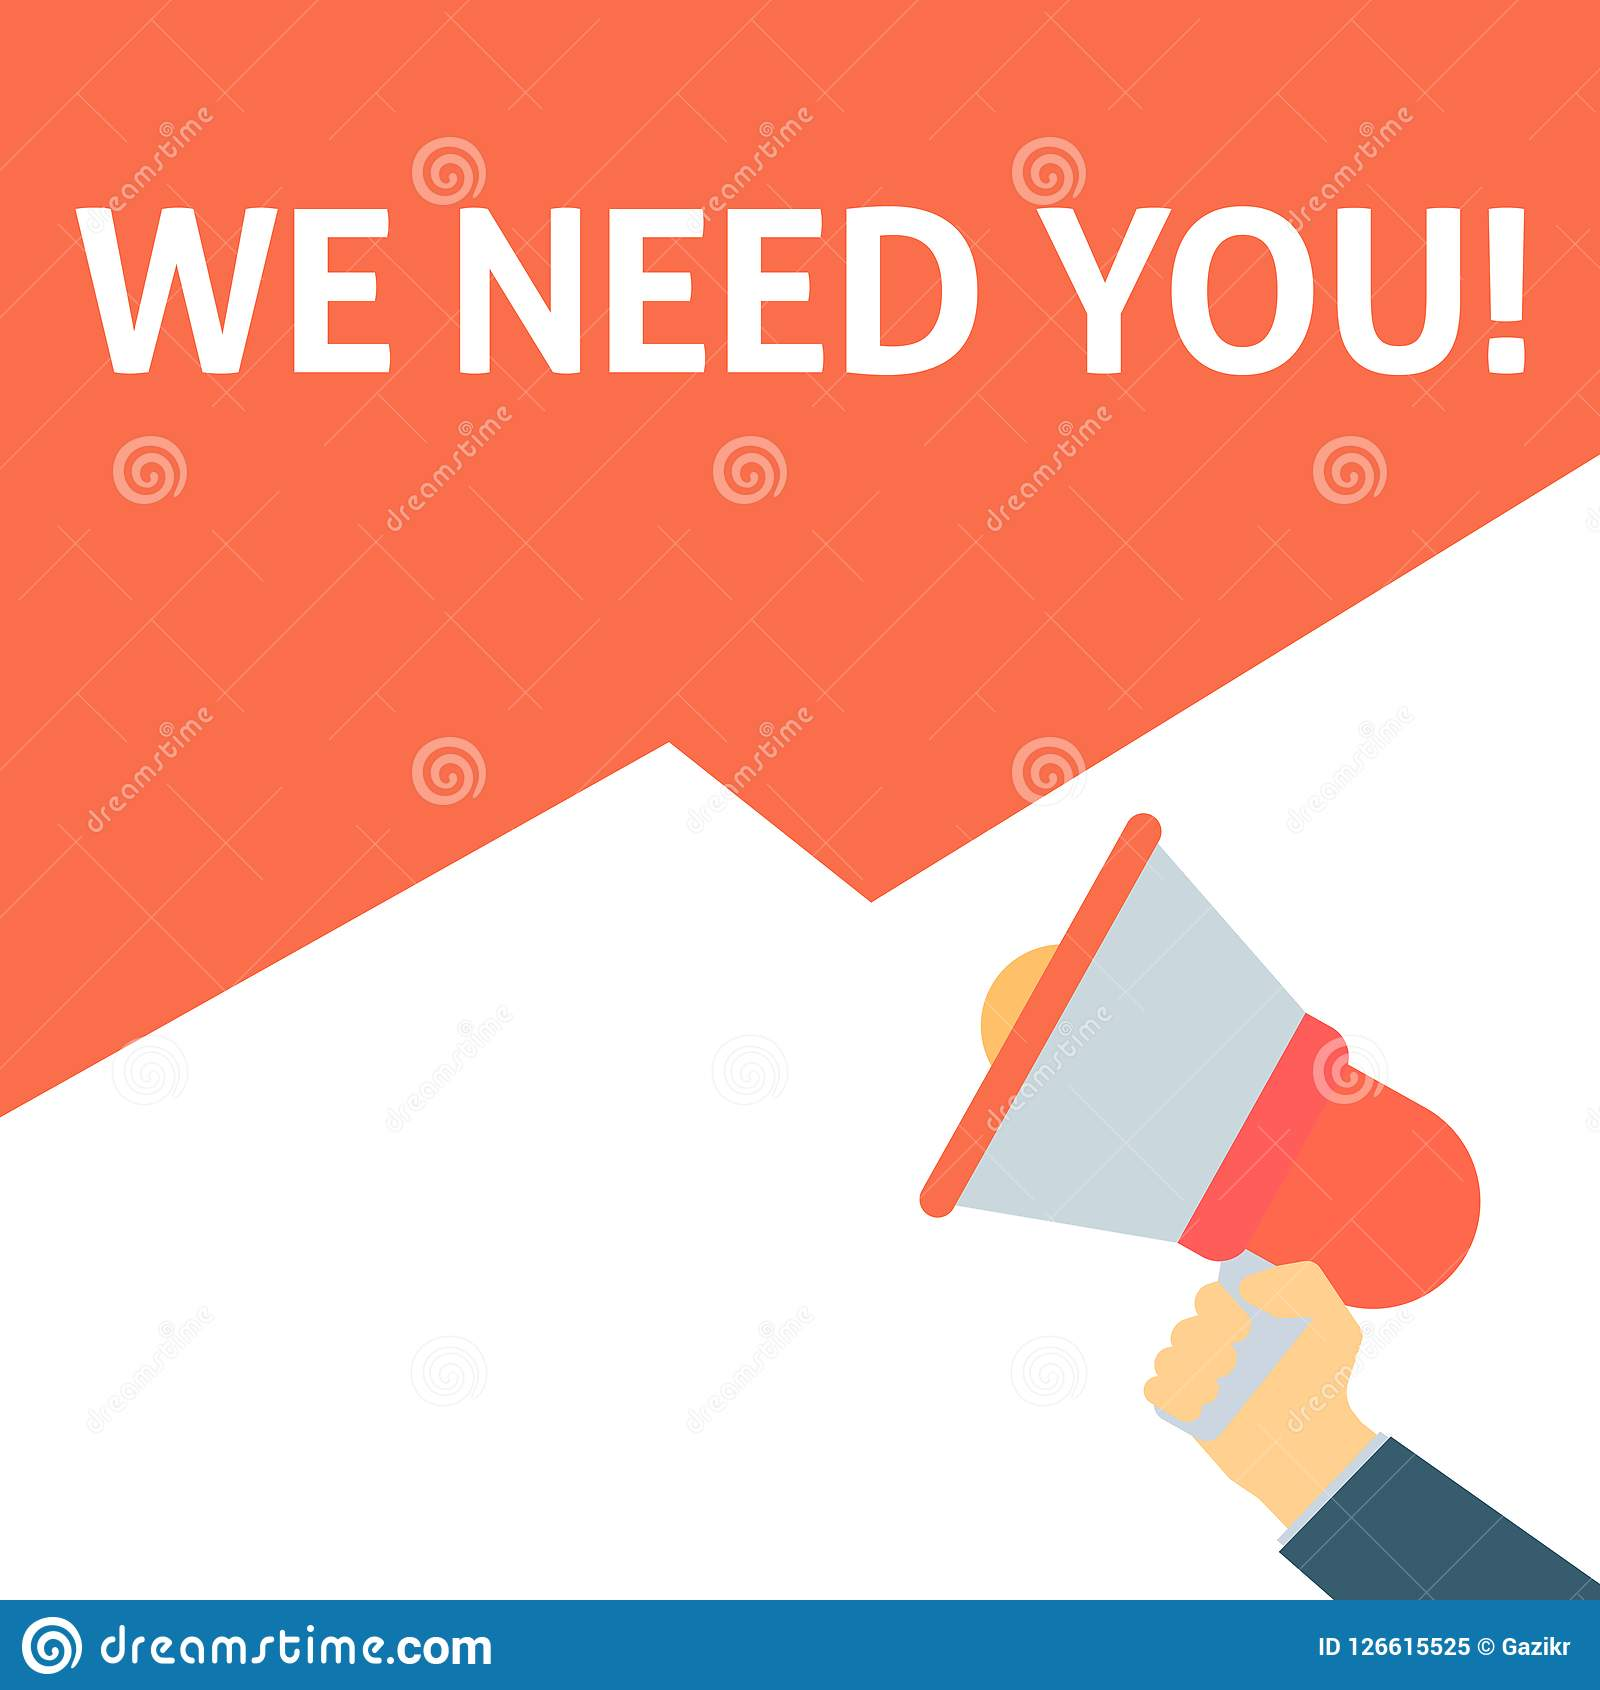 Hand Holding Megaphone With WE NEED YOU! Announcement